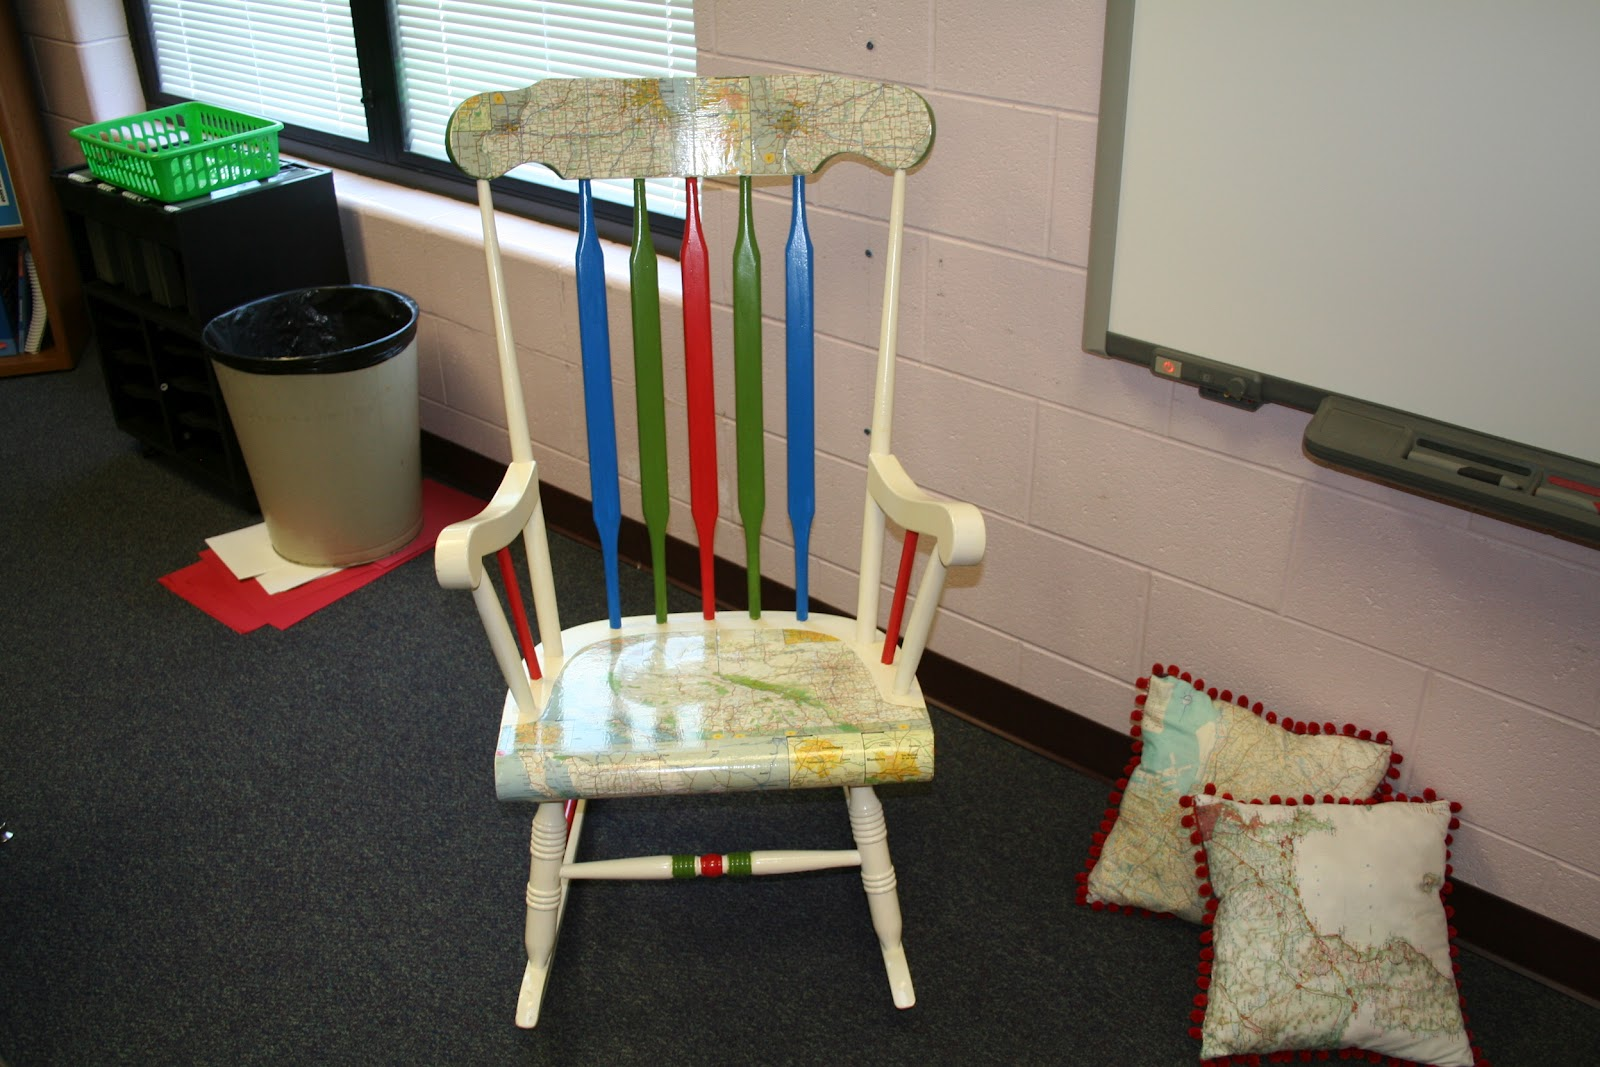 teacher rocking chair 4 seater outdoor table and chairs the paperbag teachers room reveal traveling through third